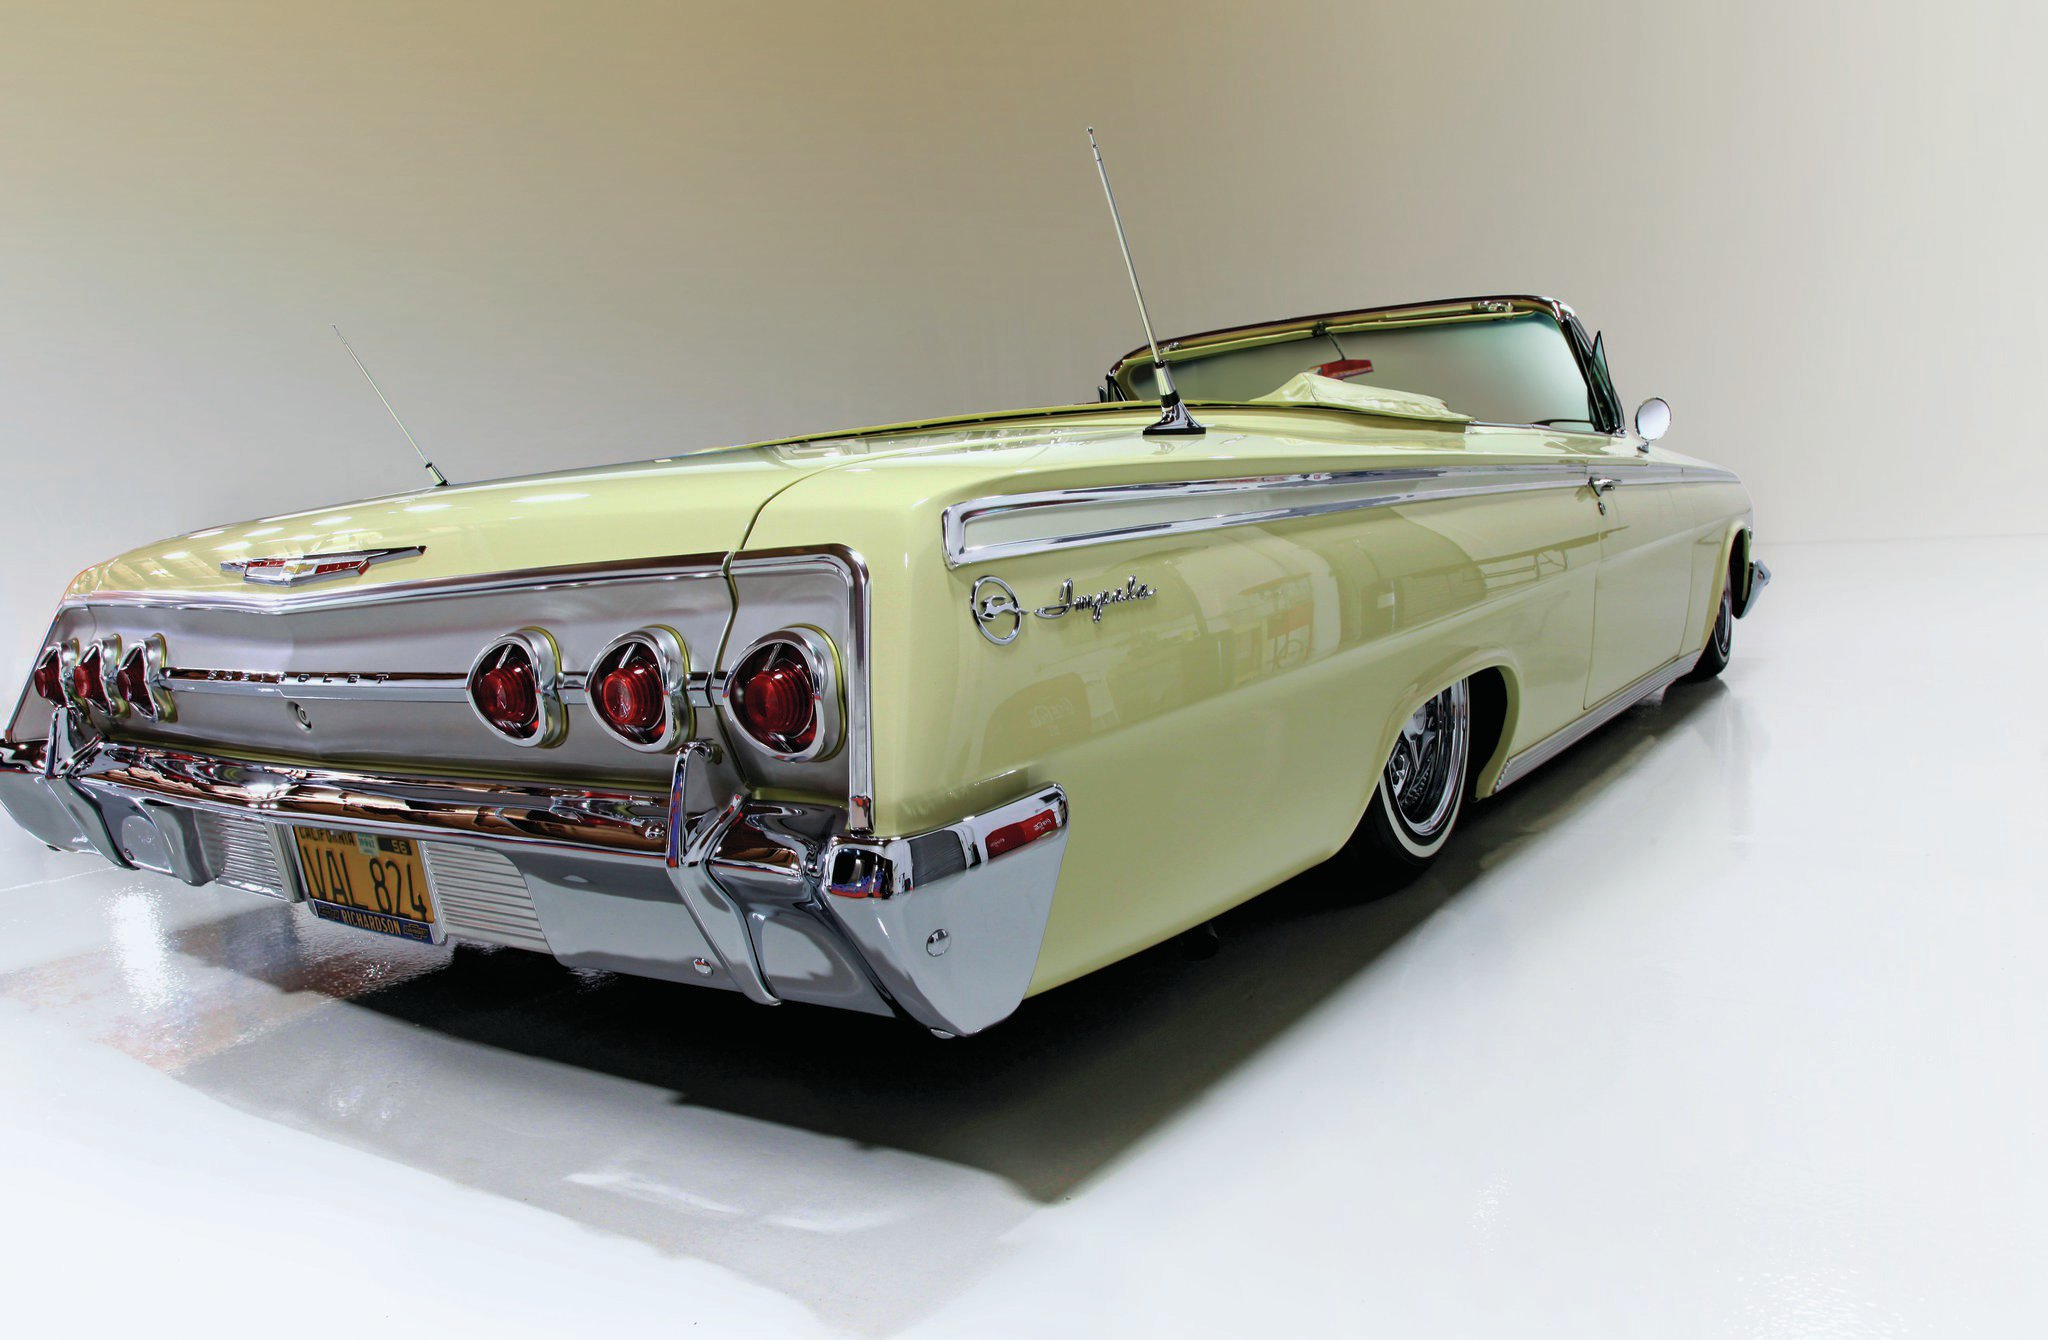 1962 Chevrolet Impala Convertible It Is What It Is Original